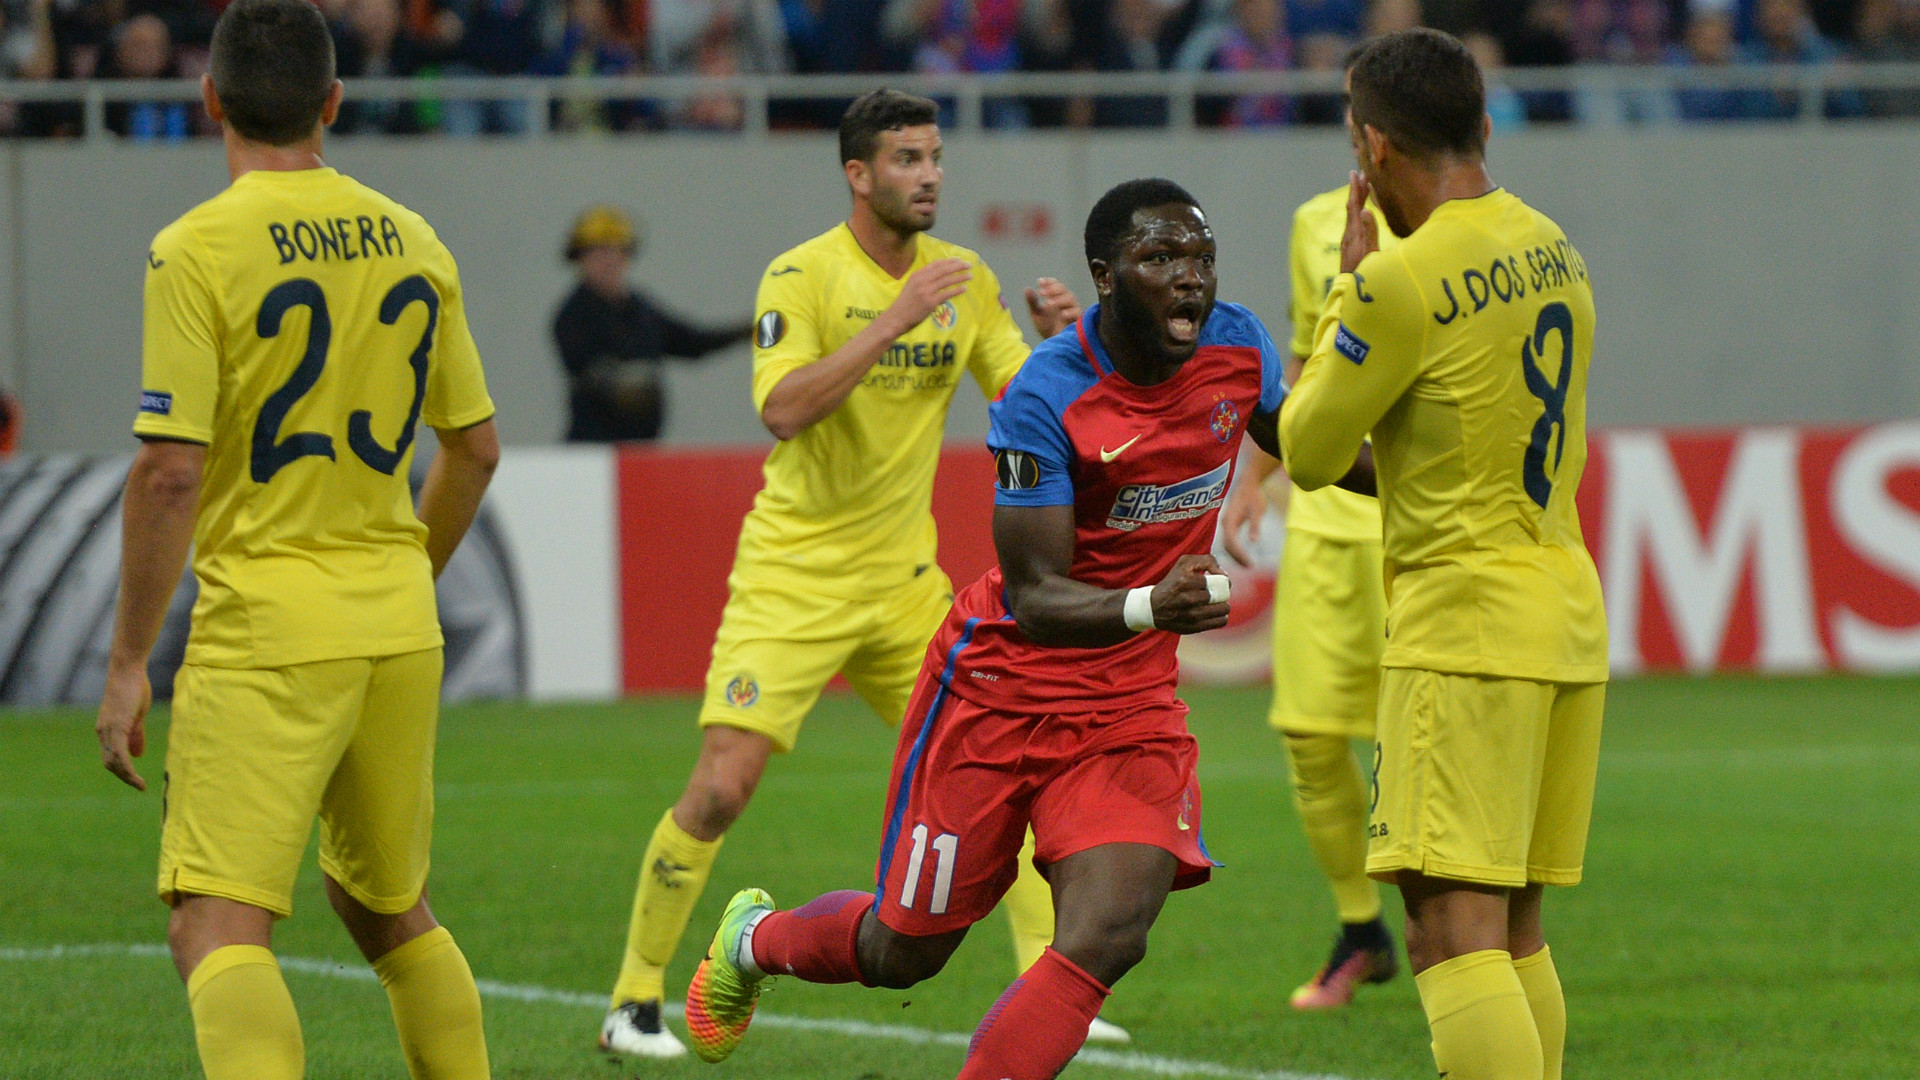 Muniru Sulley Jona Dos Santos Steaua Bucharest Villarreal UEFA Europa League